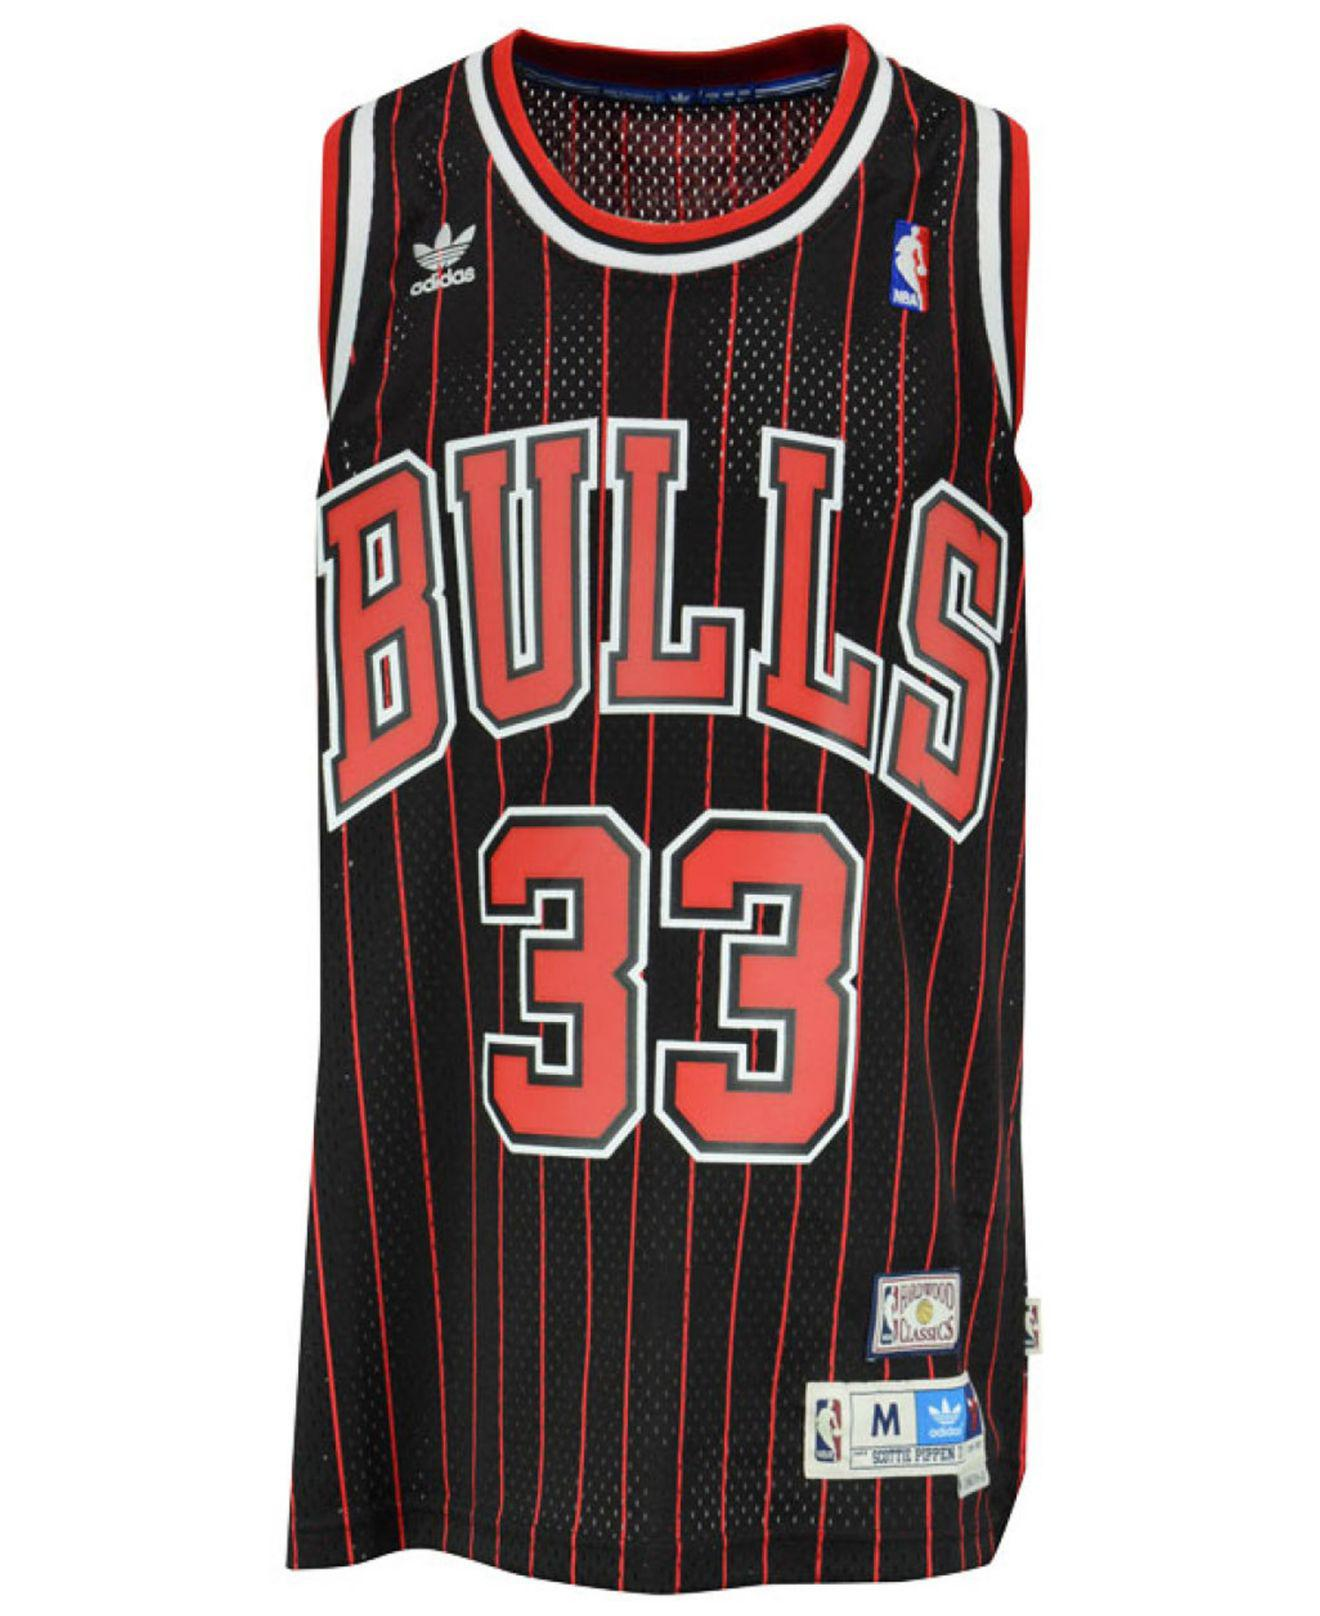 fa6b96bc6 adidas Men s Scottie Pippen Chicago Bulls Swingman Jersey in Red for Men -  Save 27% - Lyst